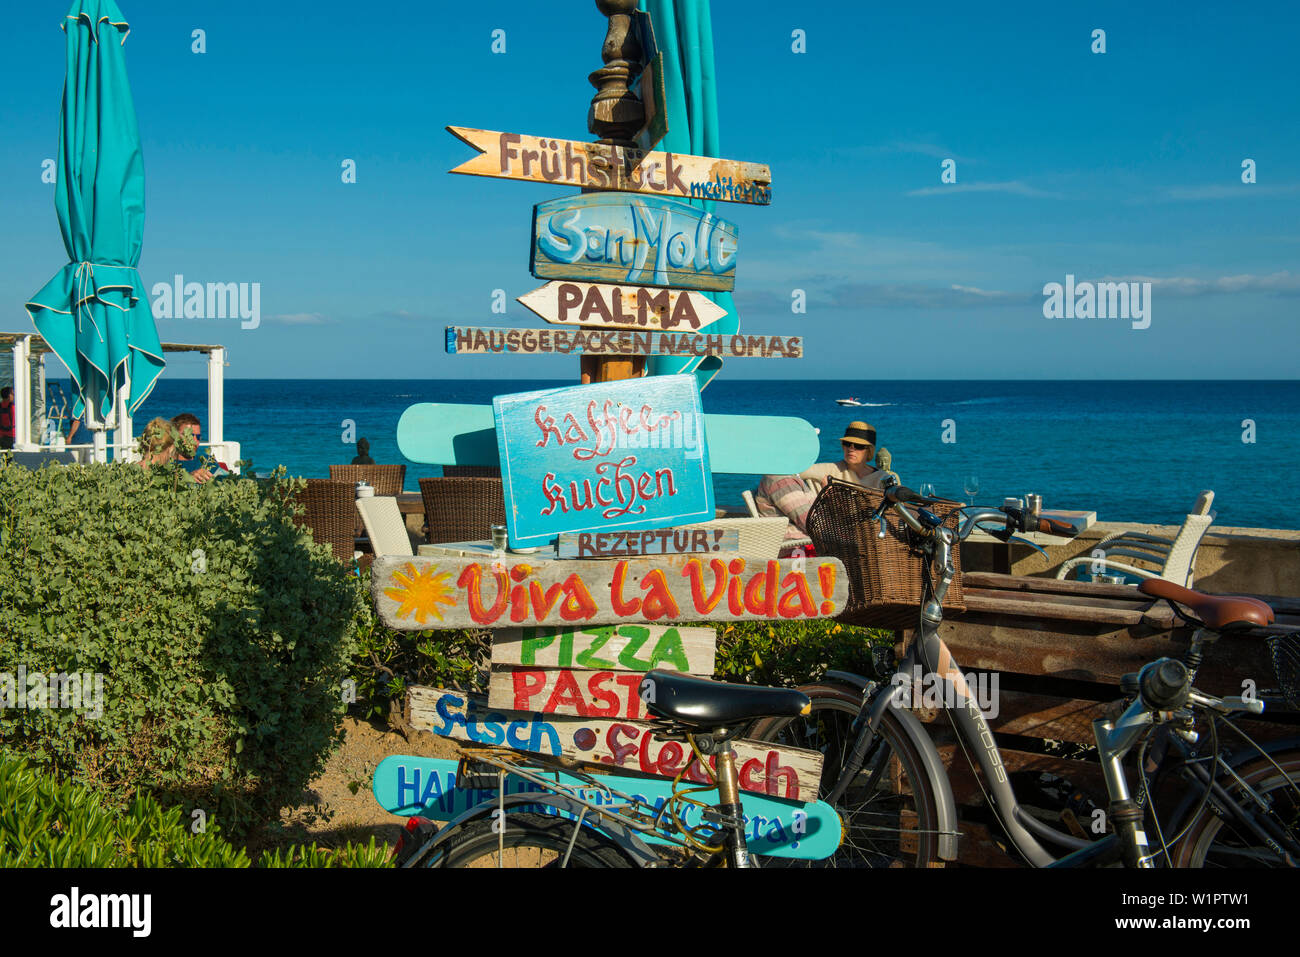 Restaurant, Cala Ratjada, Majorca, Balearic Islands, Spain - Stock Image